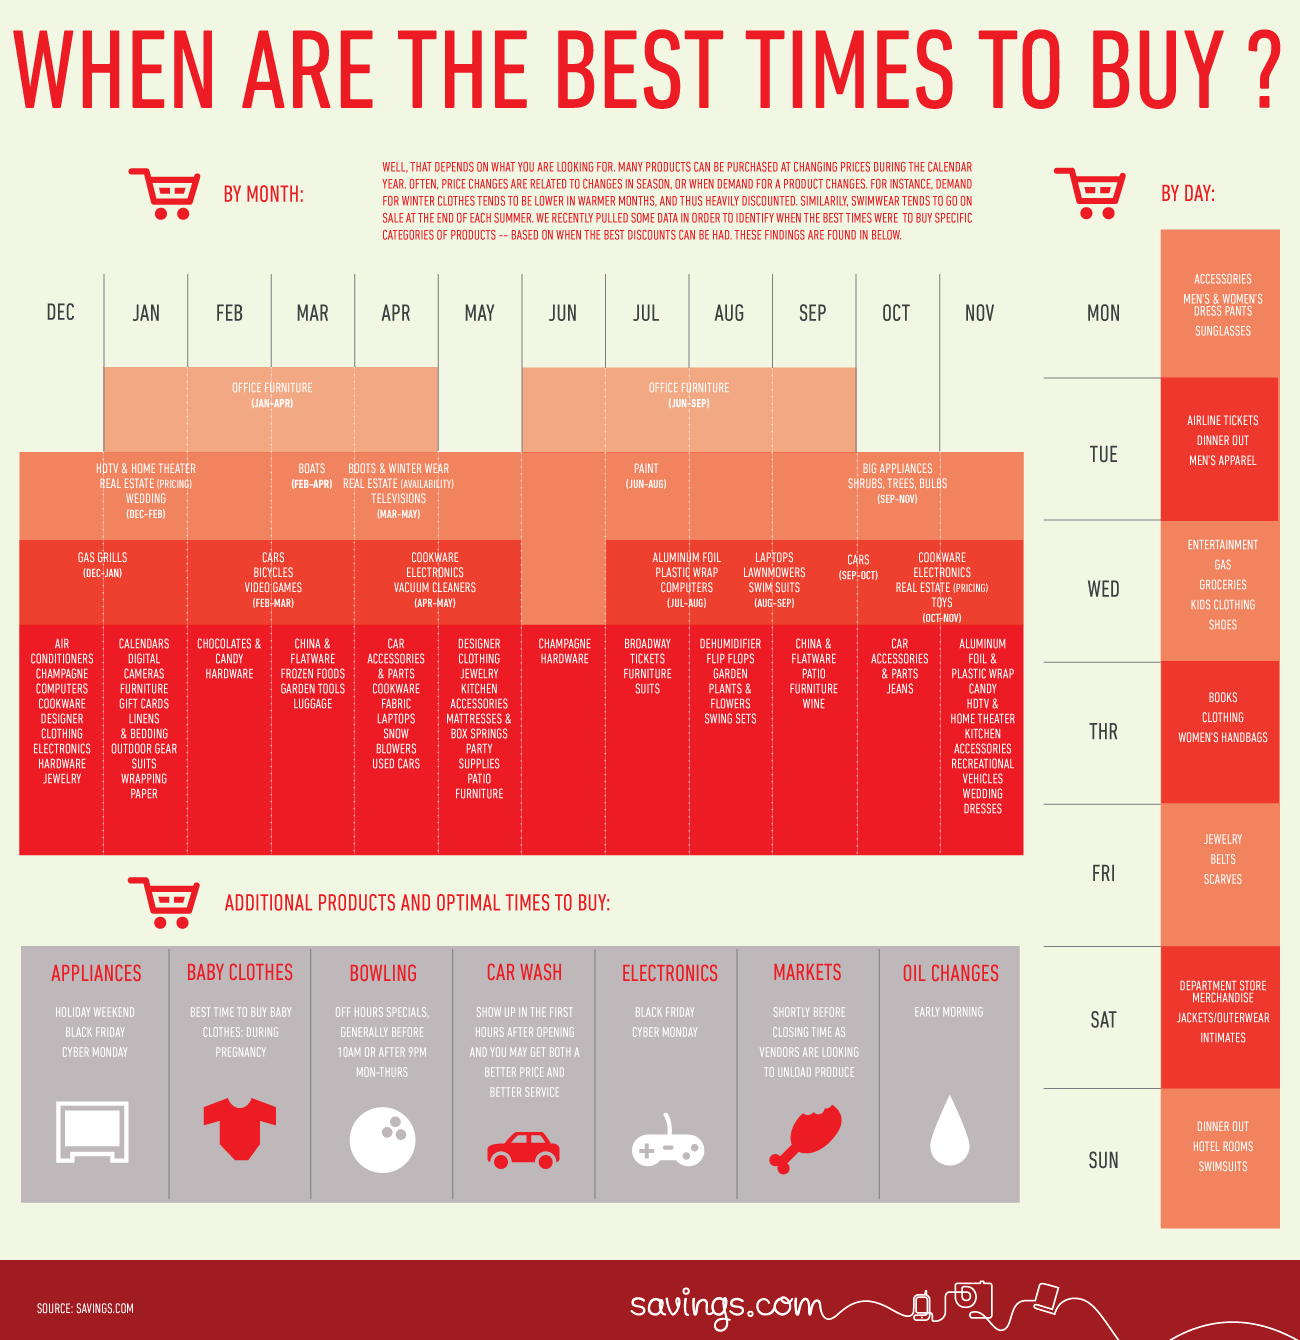 info graphic porn: when is the best time to buy? — chance bliss